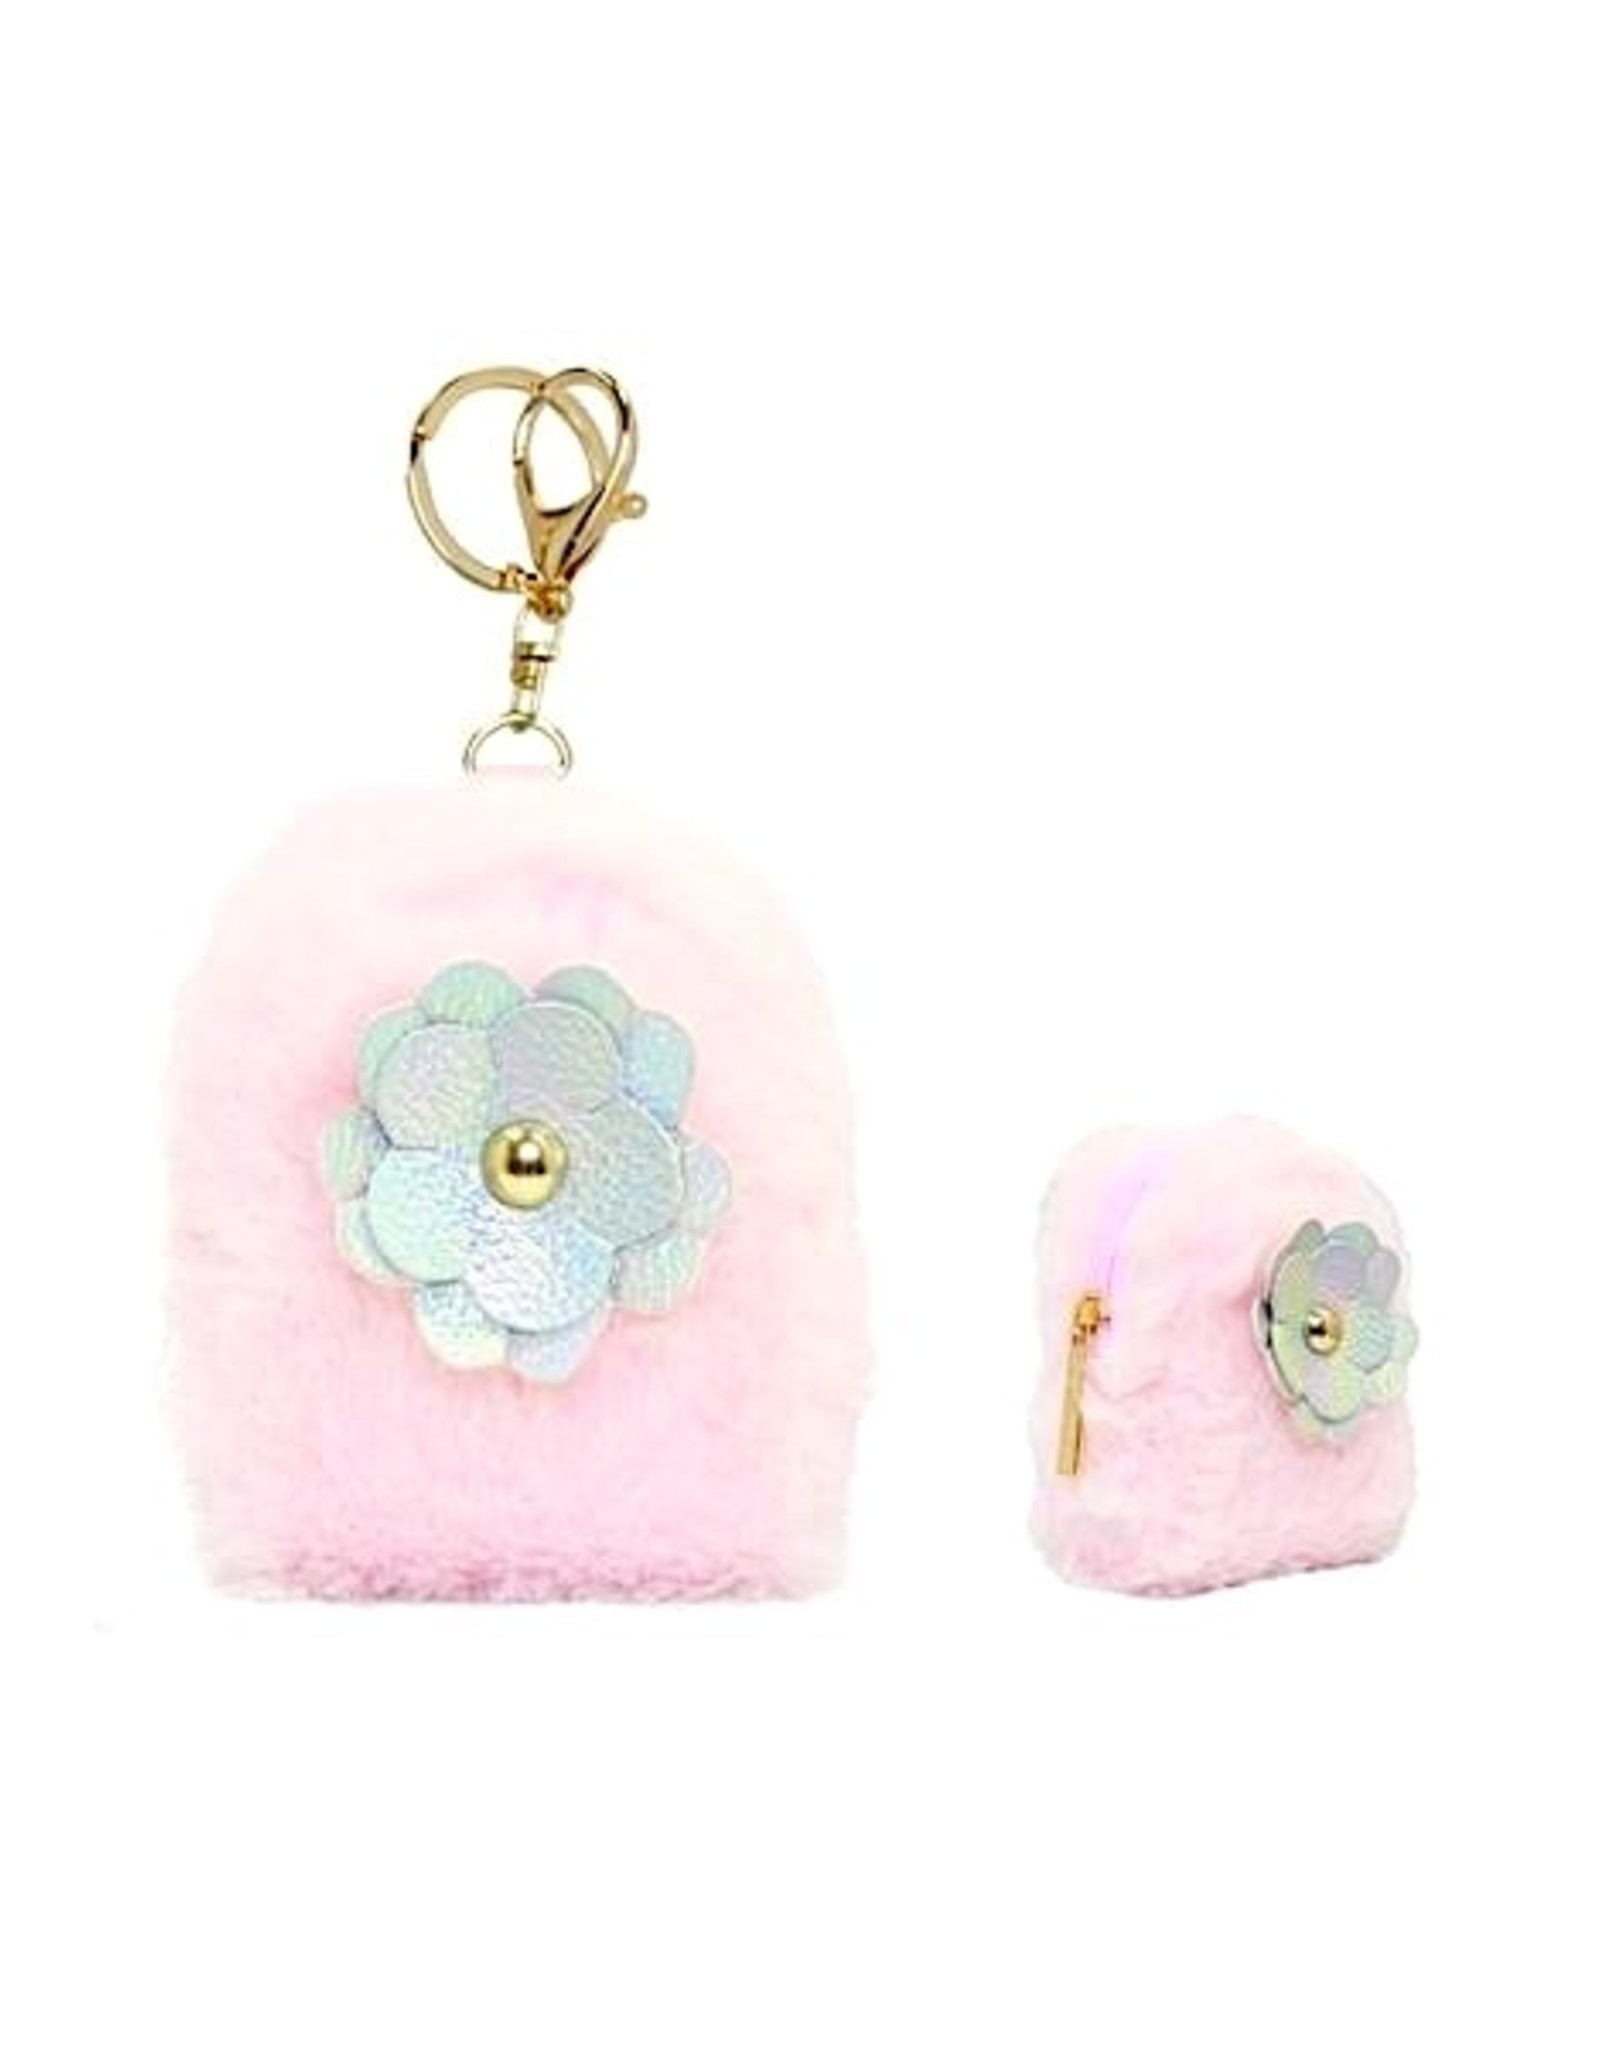 American Jewel Coin Bag w/ Flower